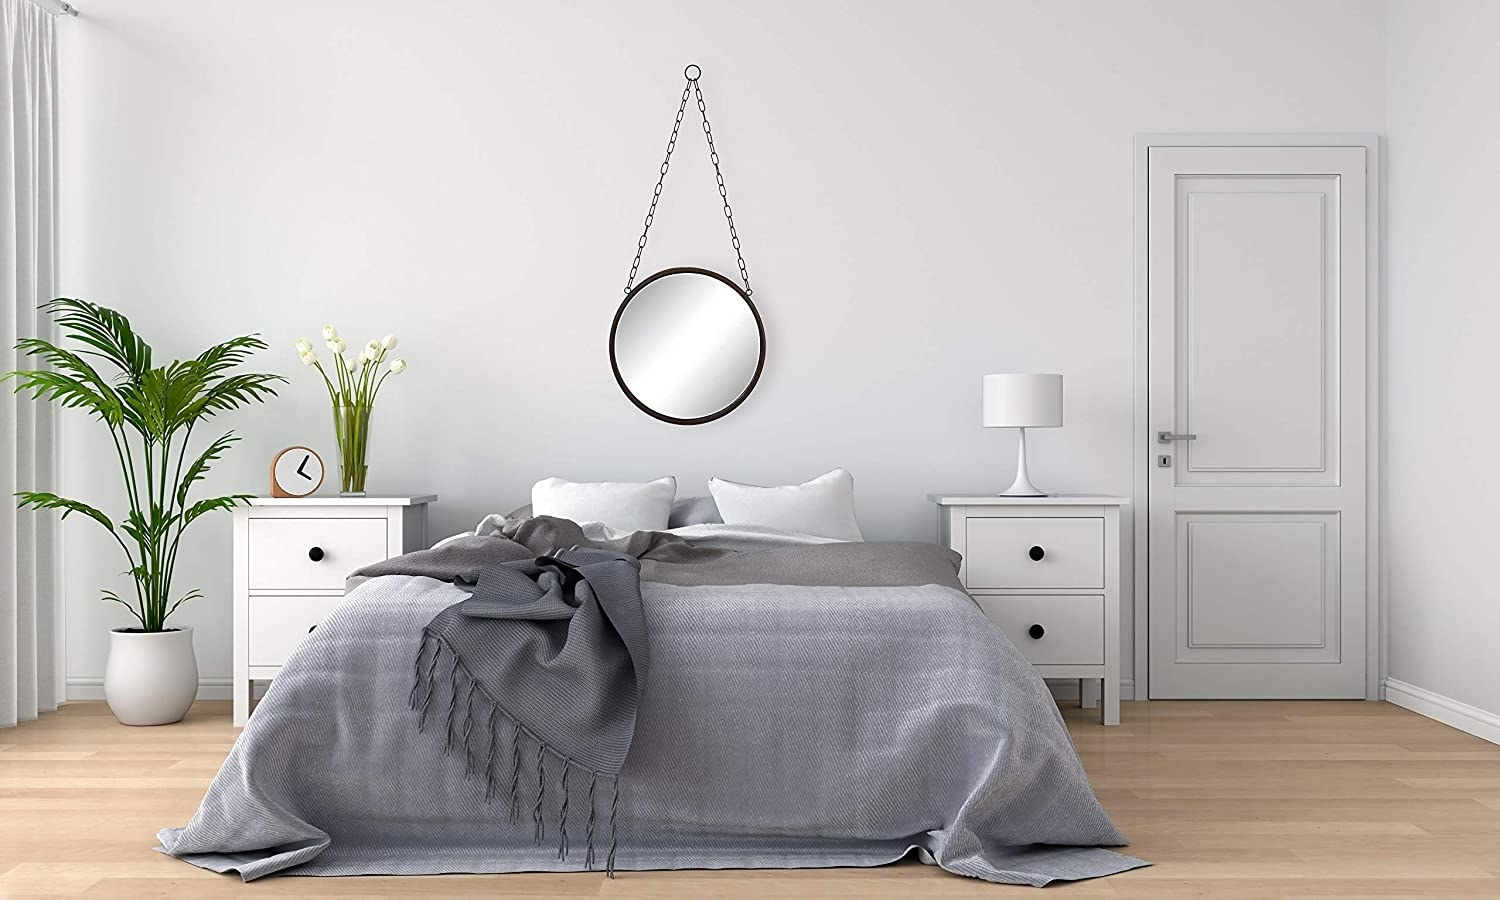 A round mirror with a chain hangs above a bed in a bedroom